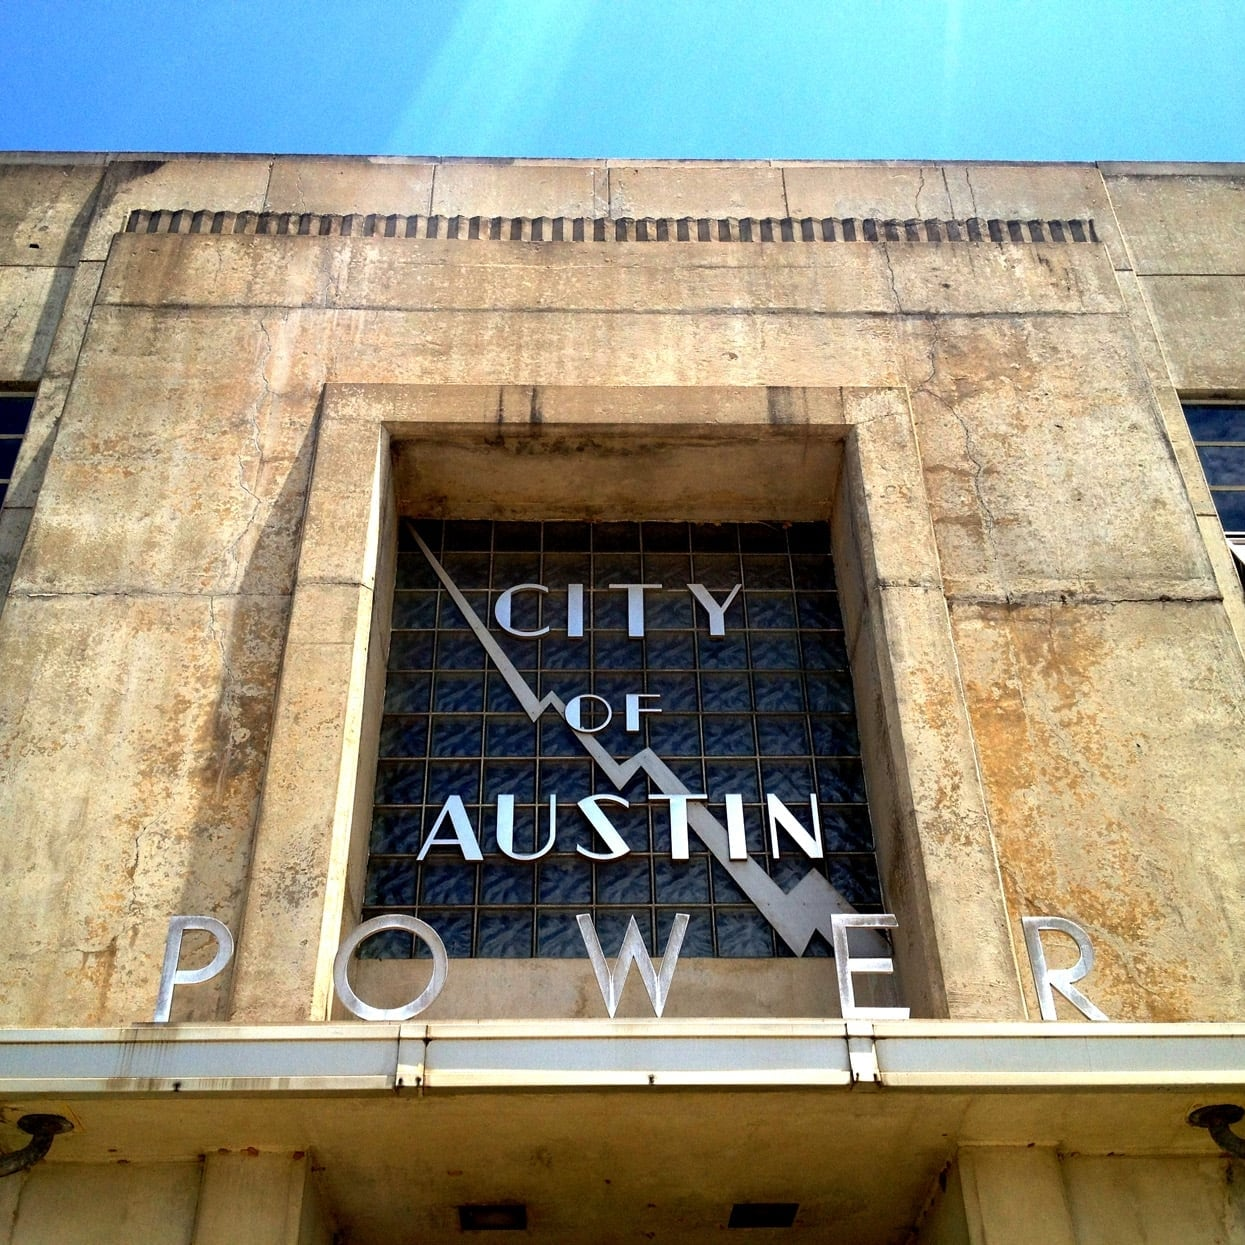 Photo: http://www.thc.state.tx.us/preserve/projects-and-programs/national-register-historic-places/seaholm_austin